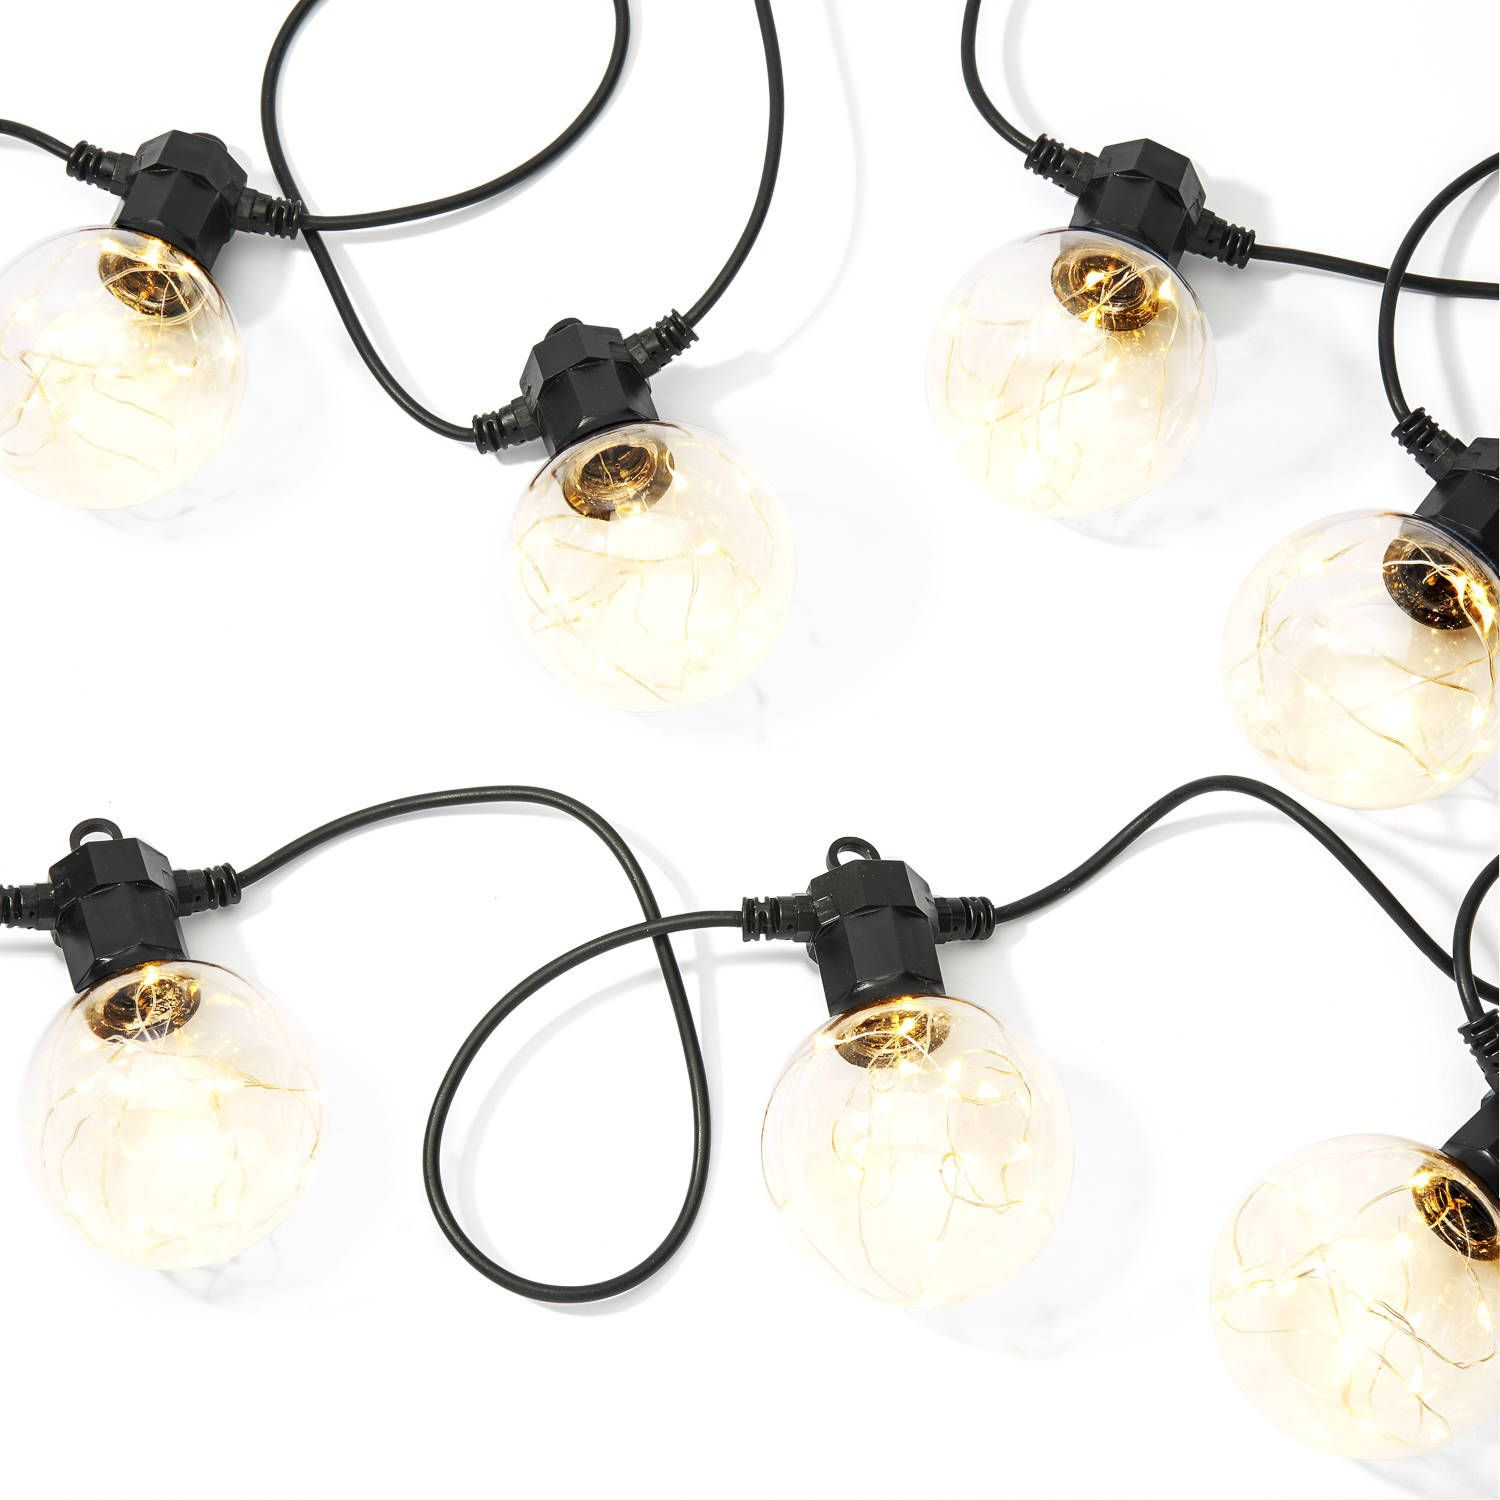 celestial globe string lights with silver wire leds strand of 10 - Decorative String Lights